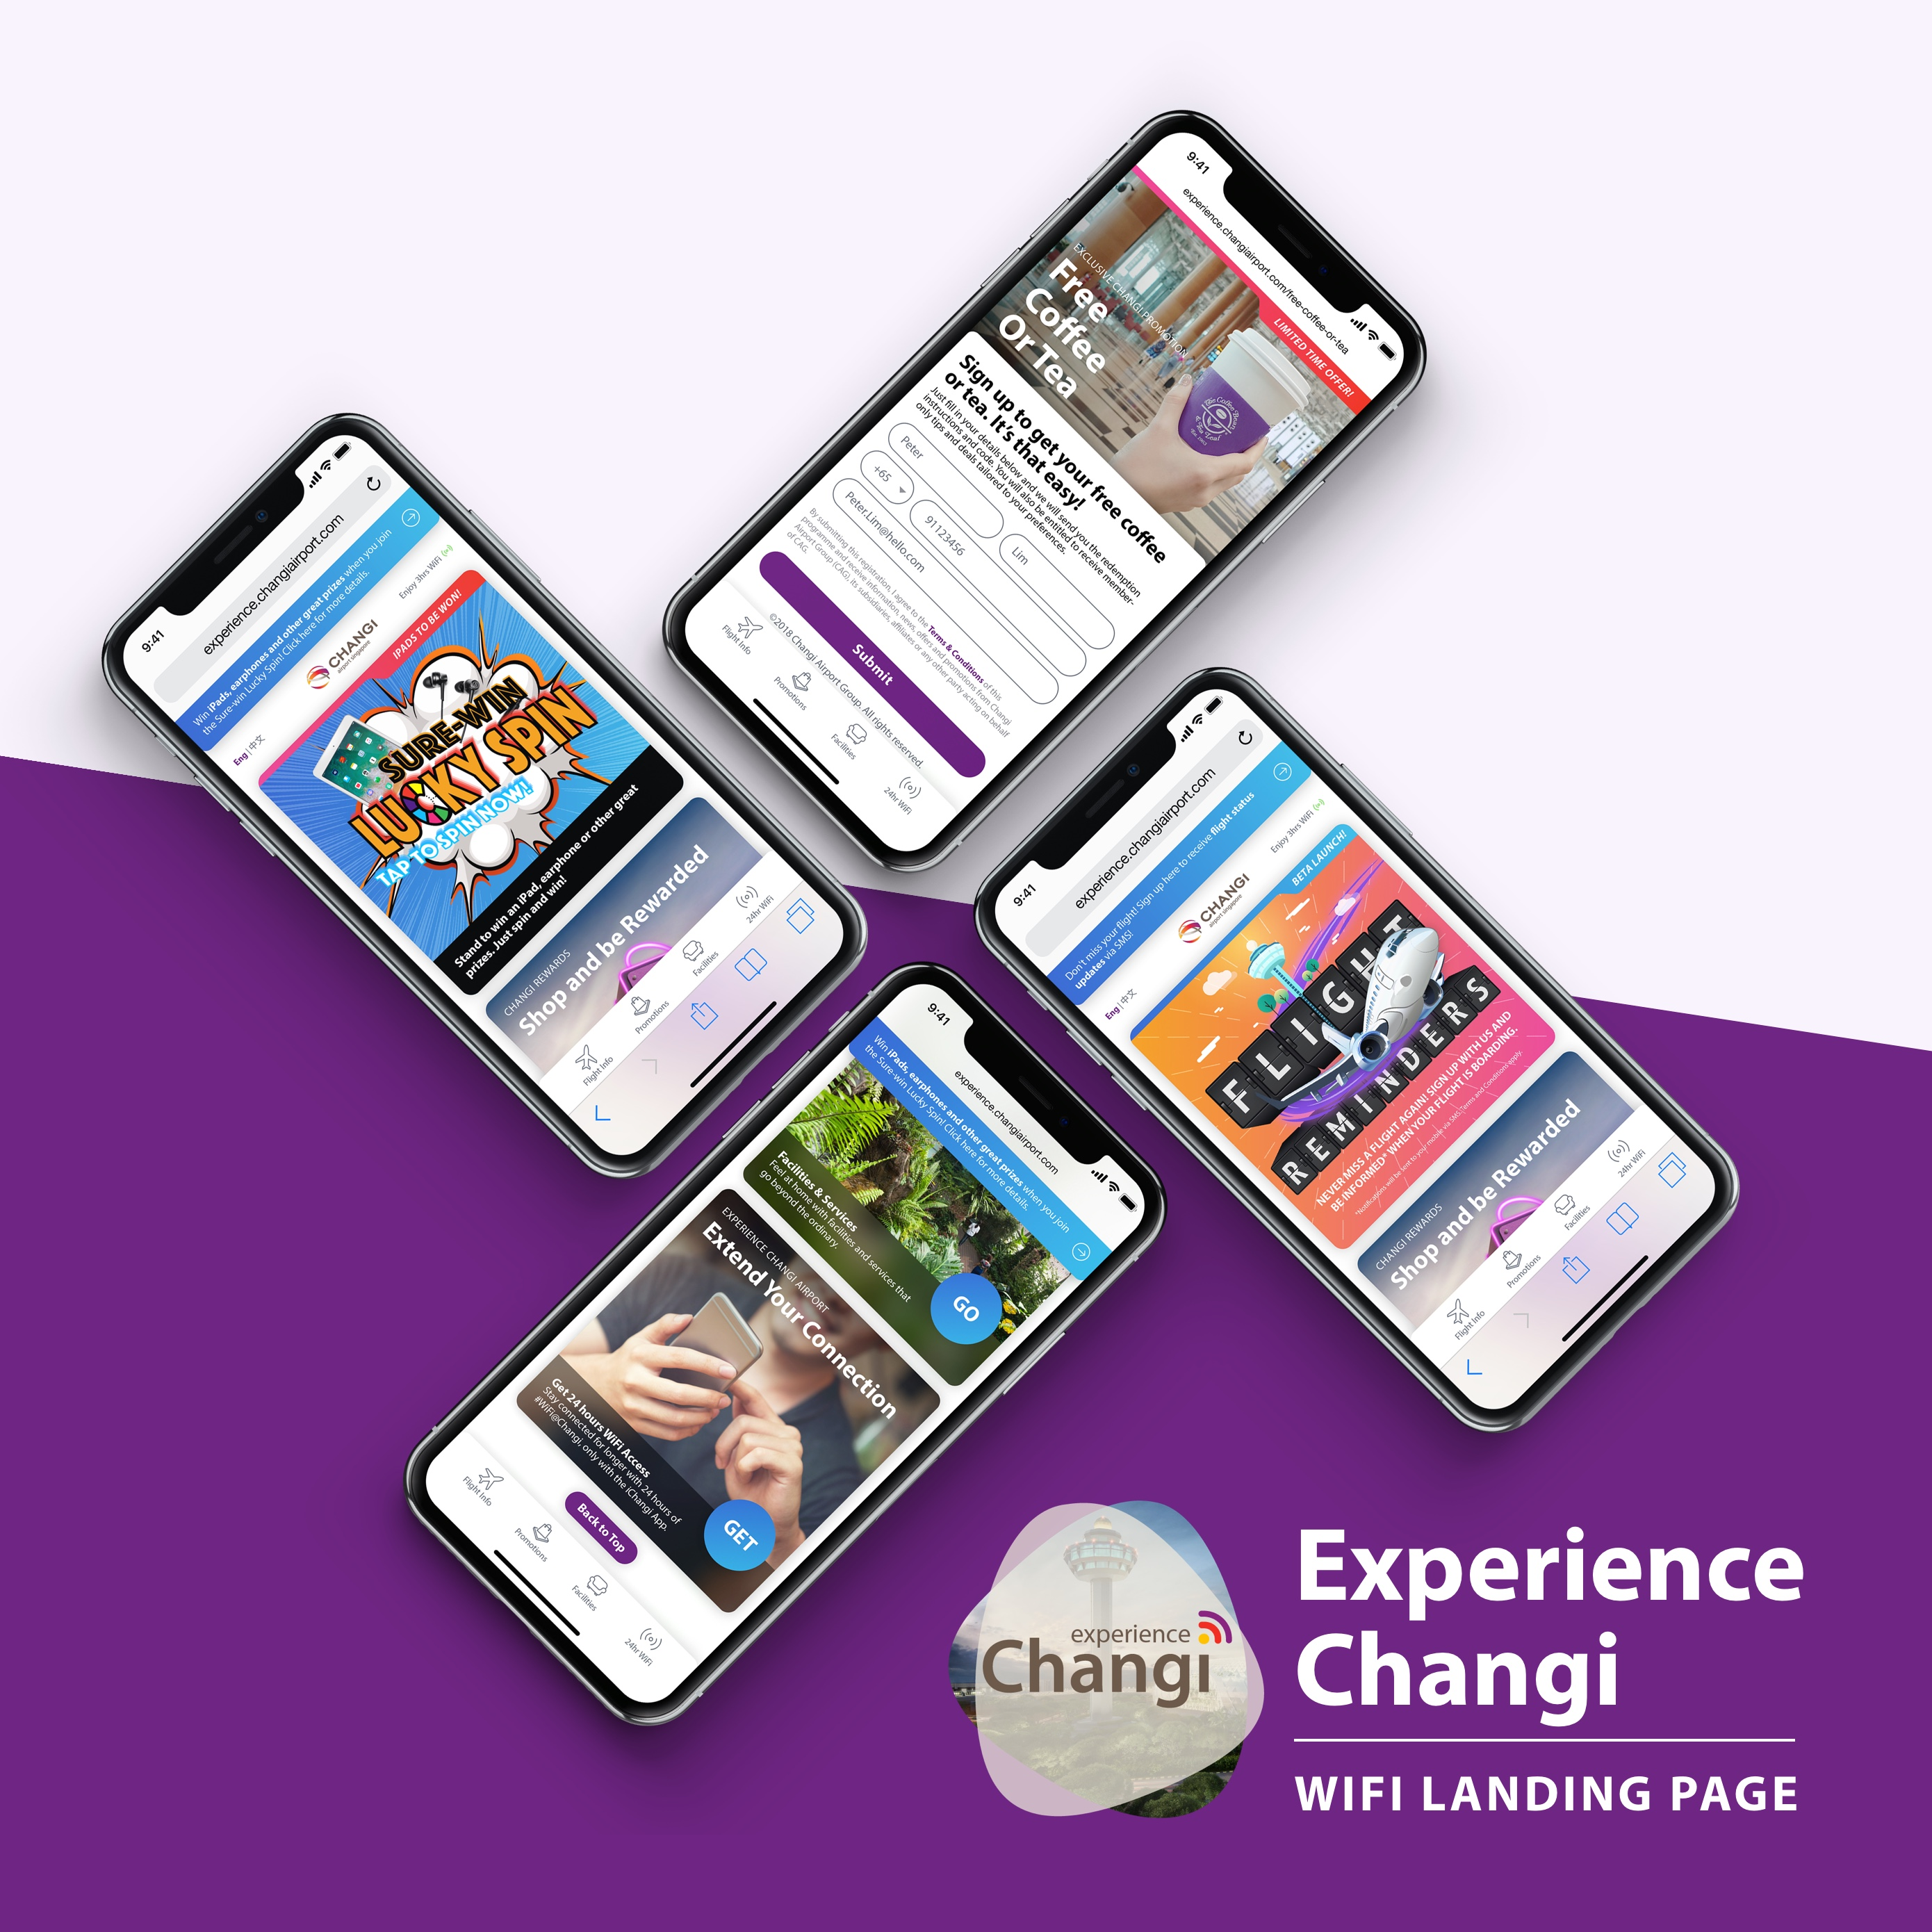 Changi Airport WiFi landing page